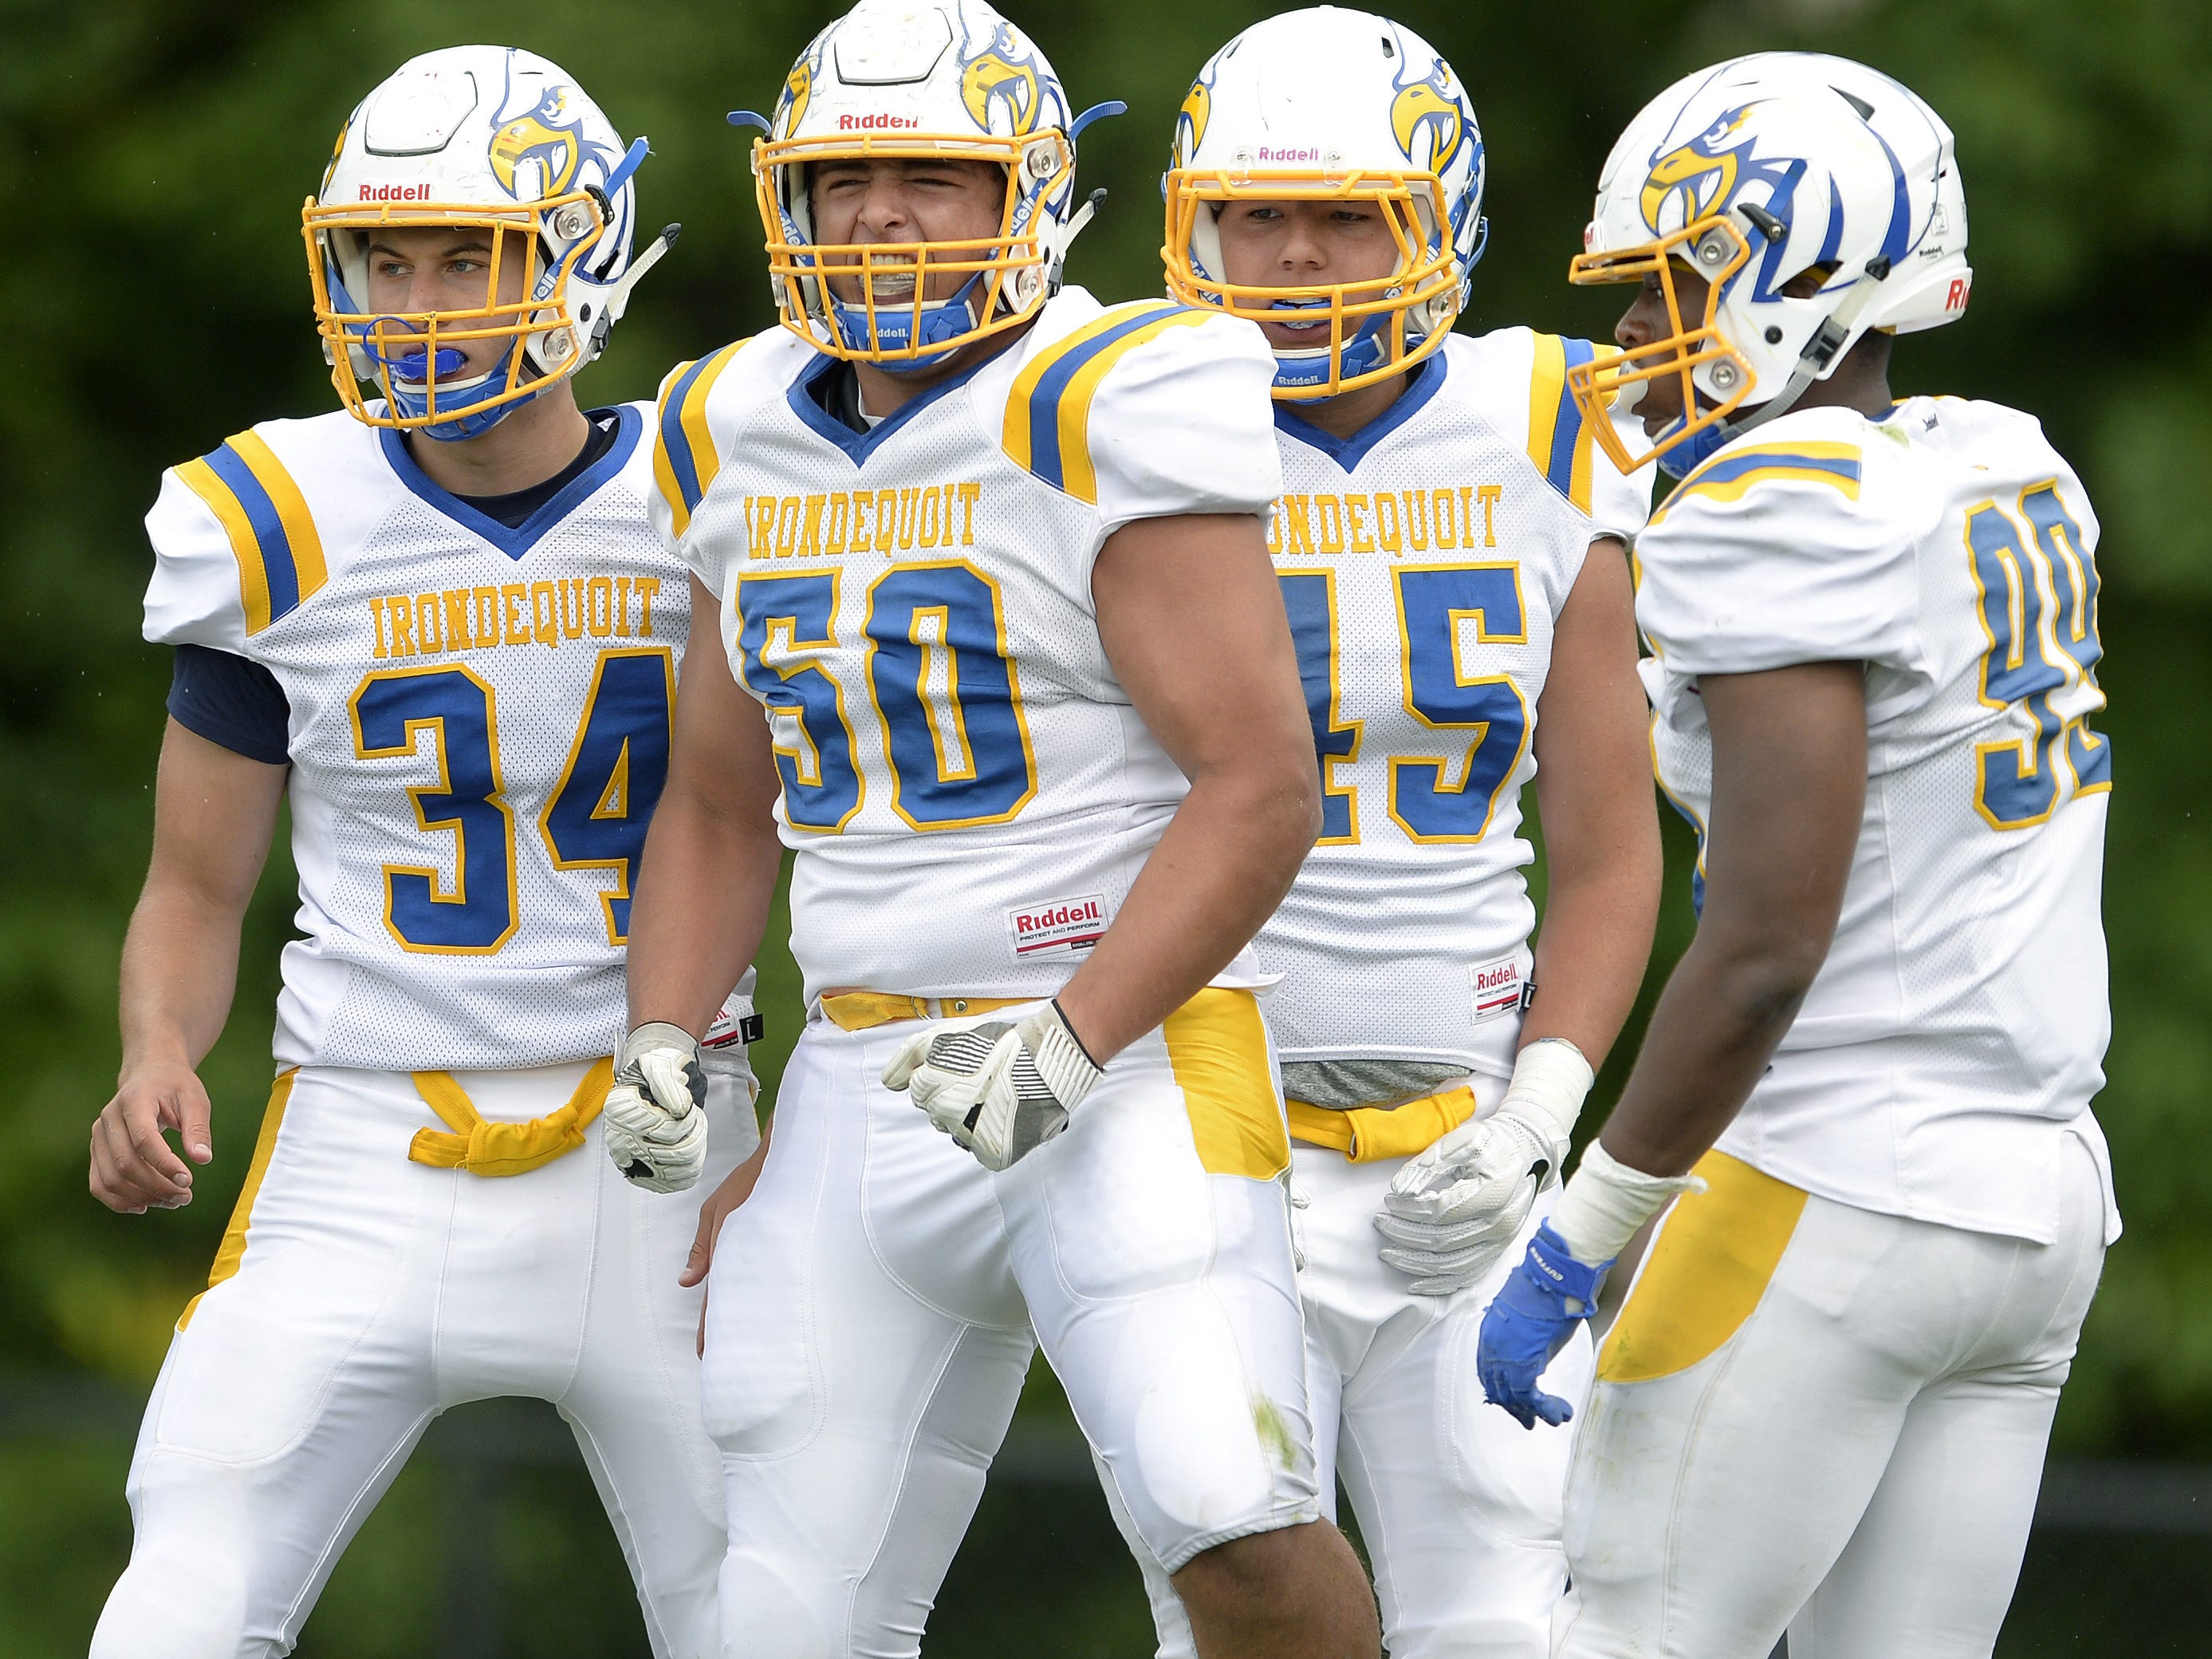 Irondequoit's Nick Serce (50) celebrates his sack with teammates during a regular season game played at Greece Athena High School, Saturday, Sept. 8, 2018. Irondequoit beat Greece Athena 42-7.